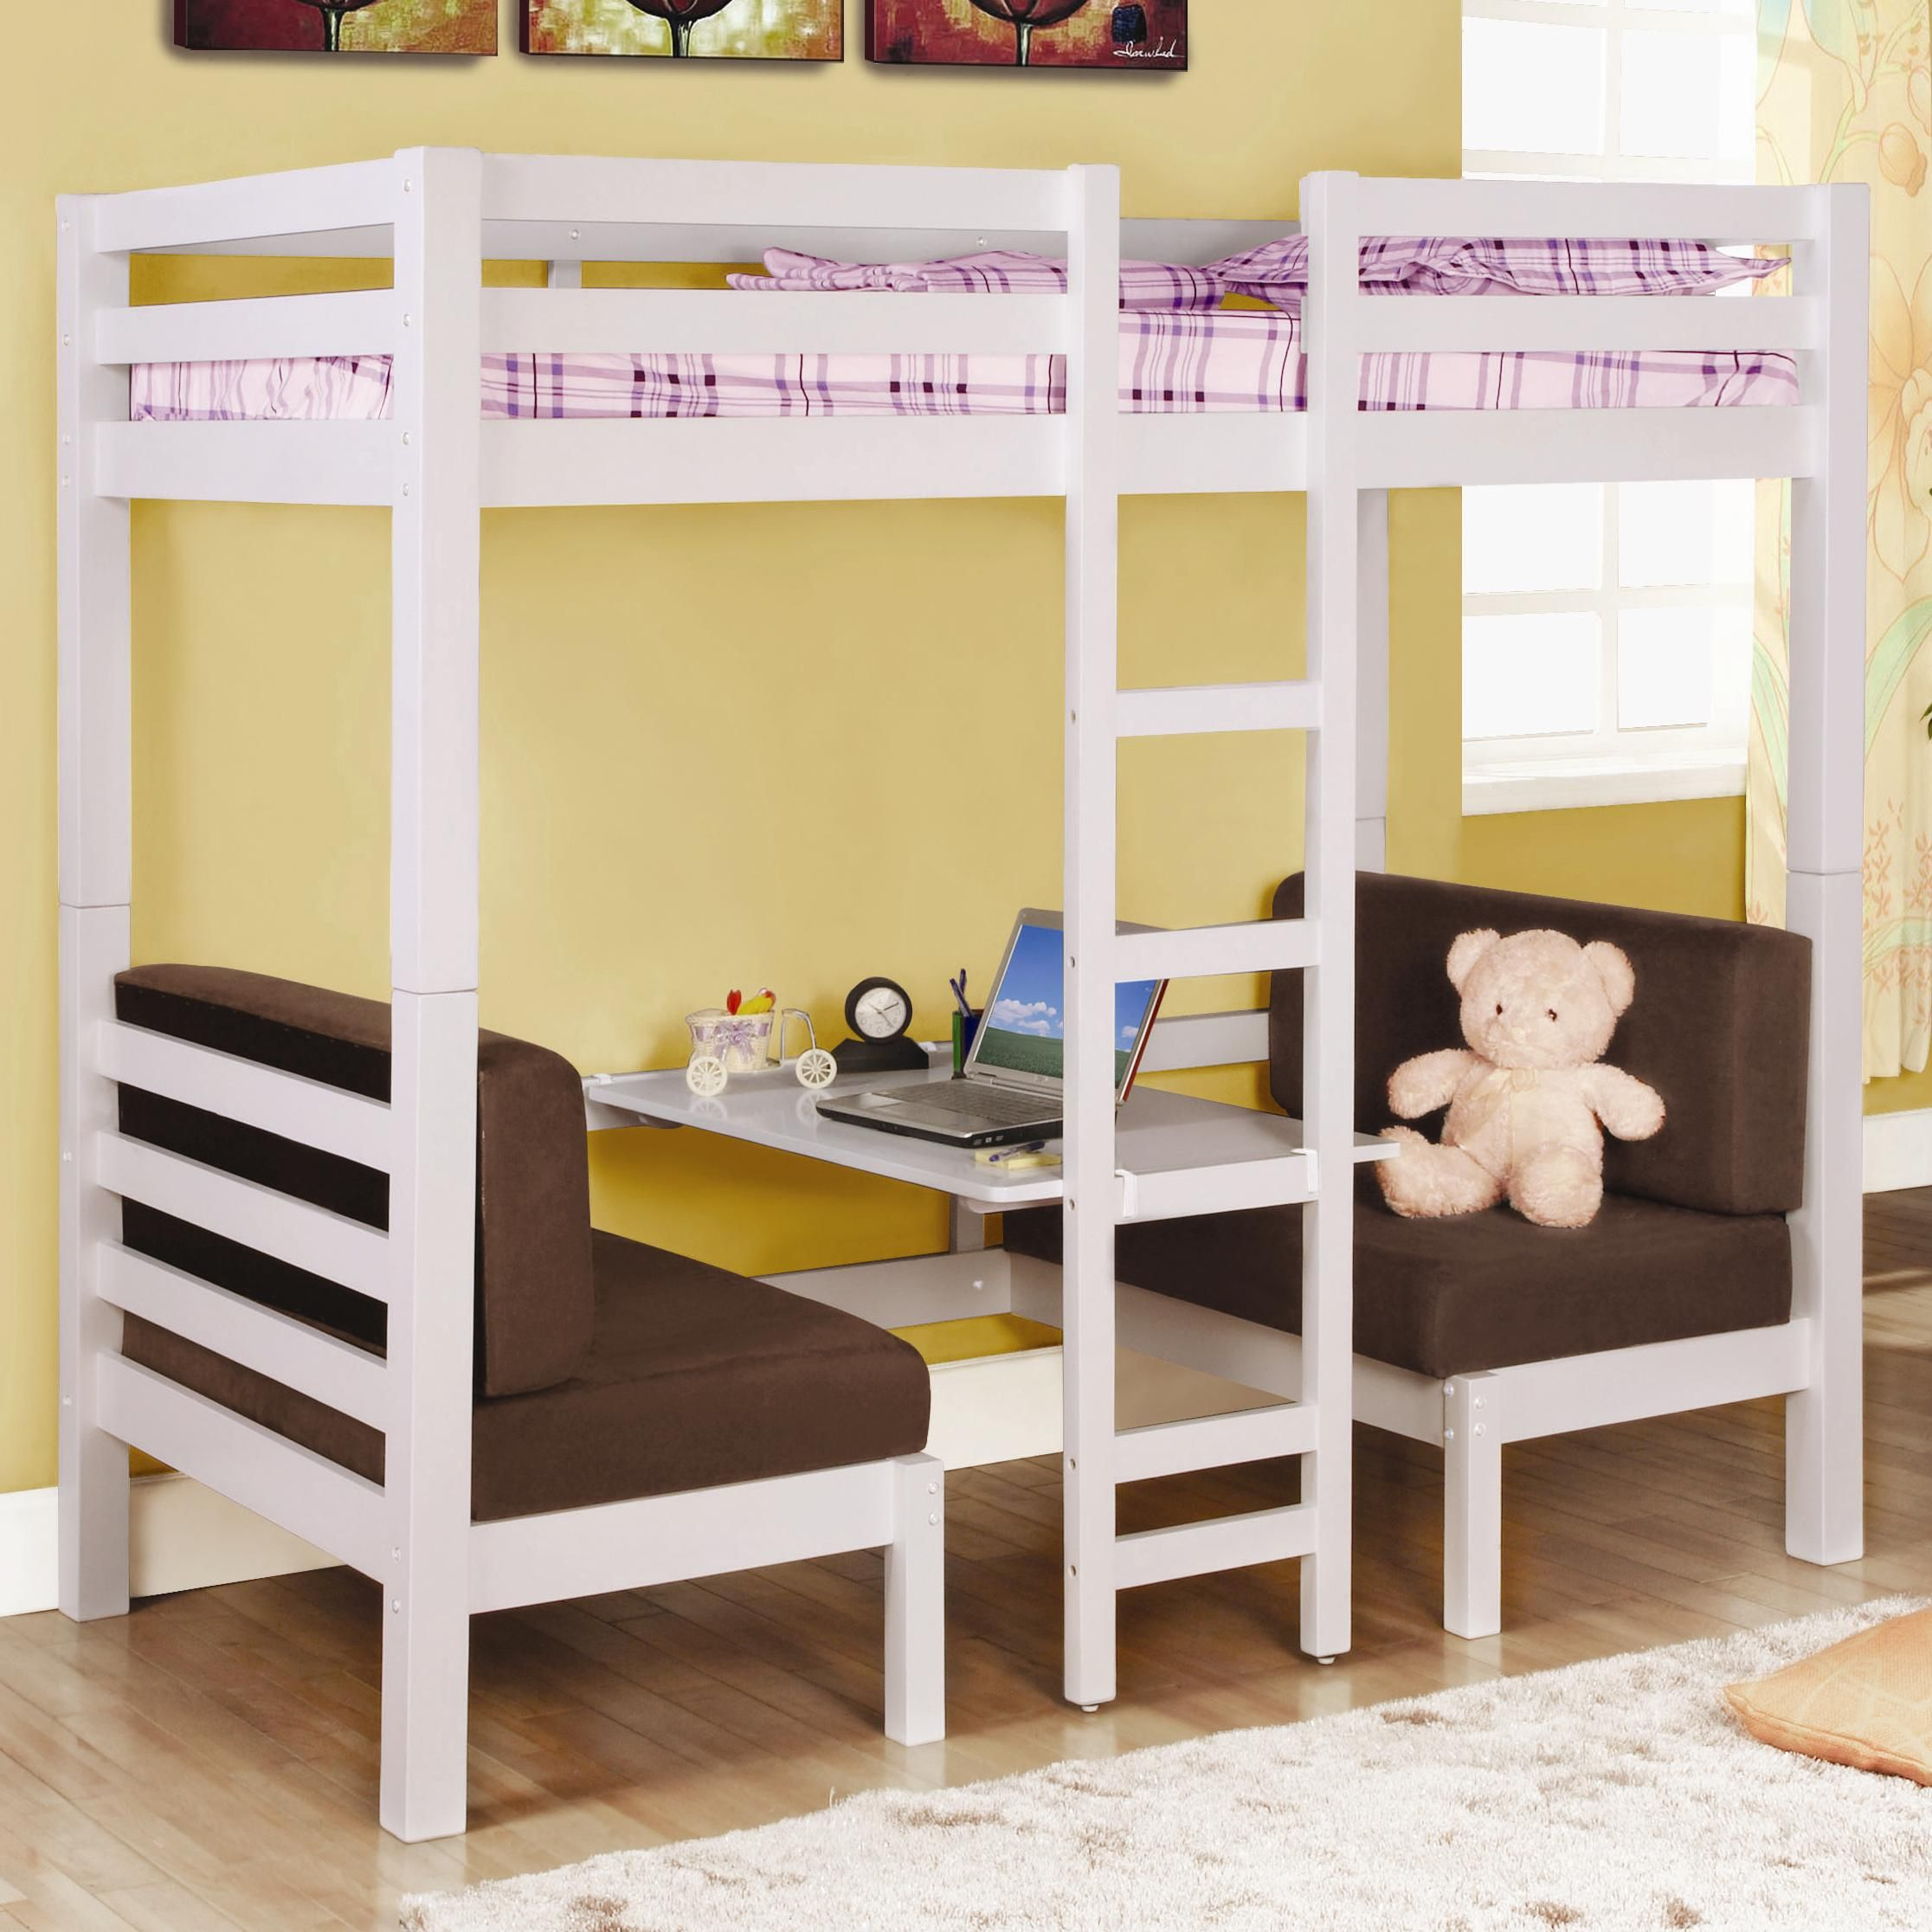 desk furniture bed marvelous bedroom files white storage uncategorized bunk loft interior inspiration with pic and of trends